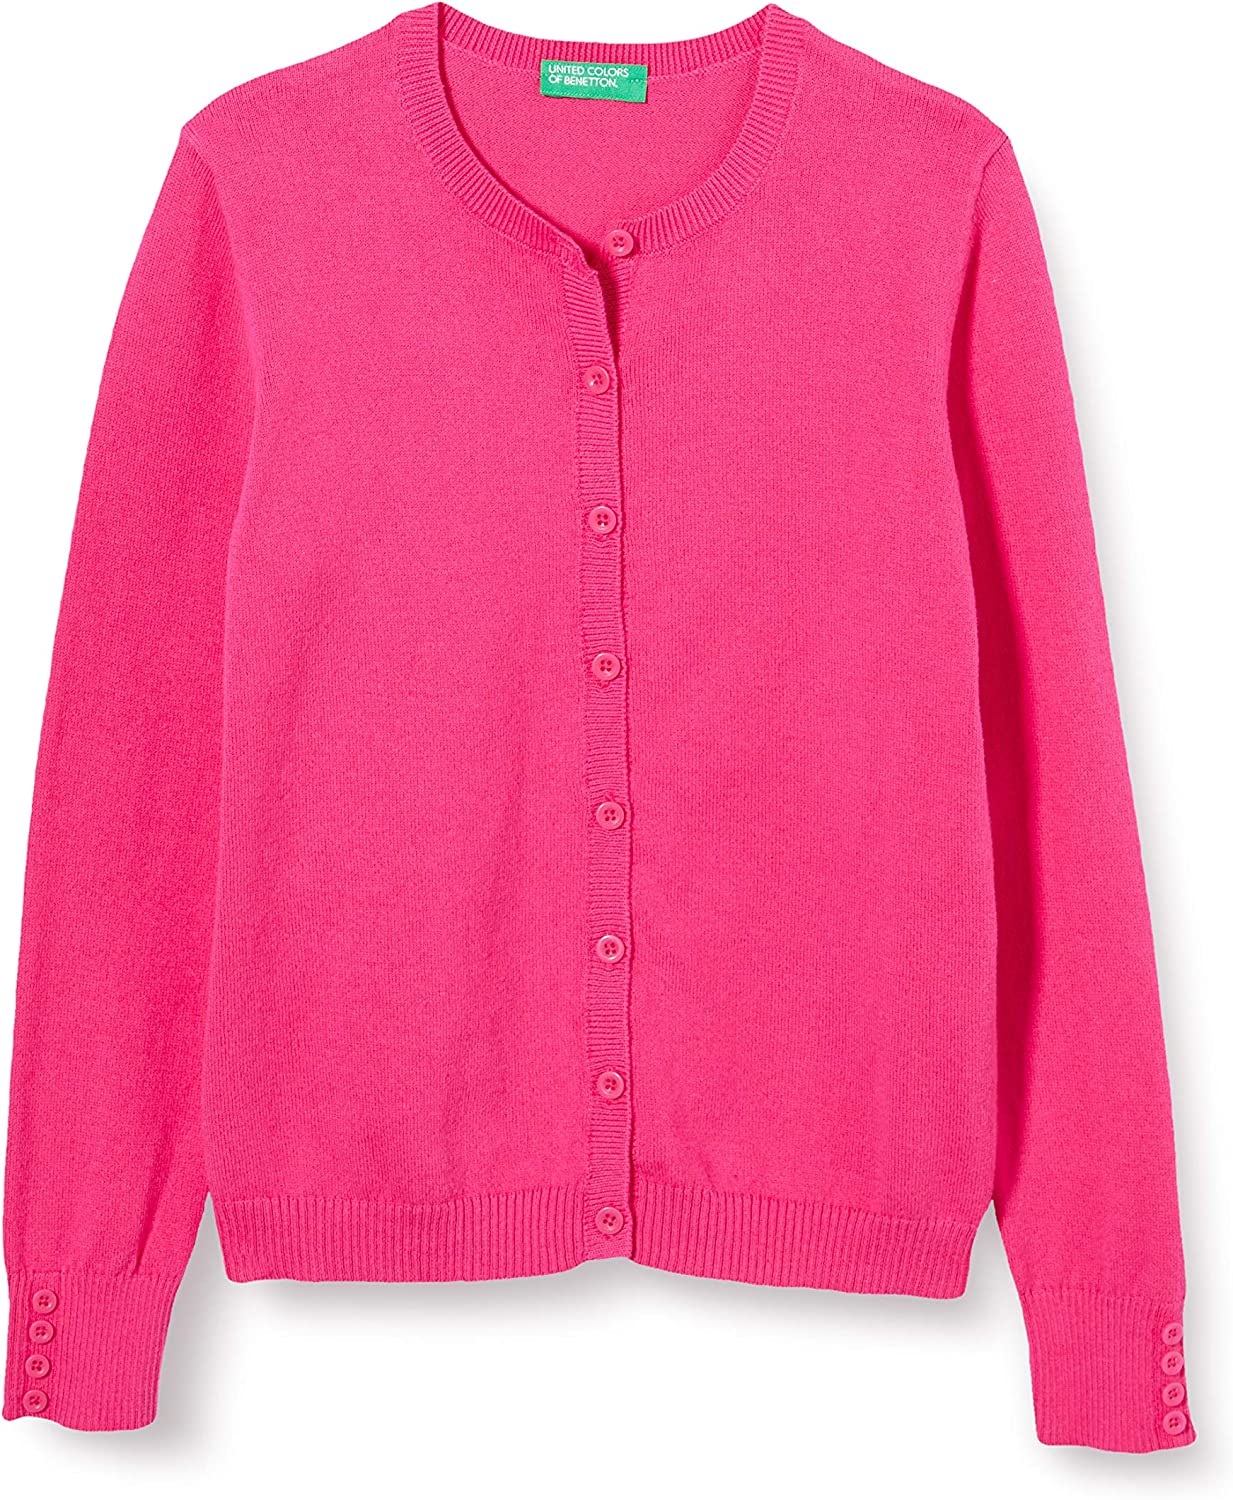 United Colors of Benetton Cardigan Bambina